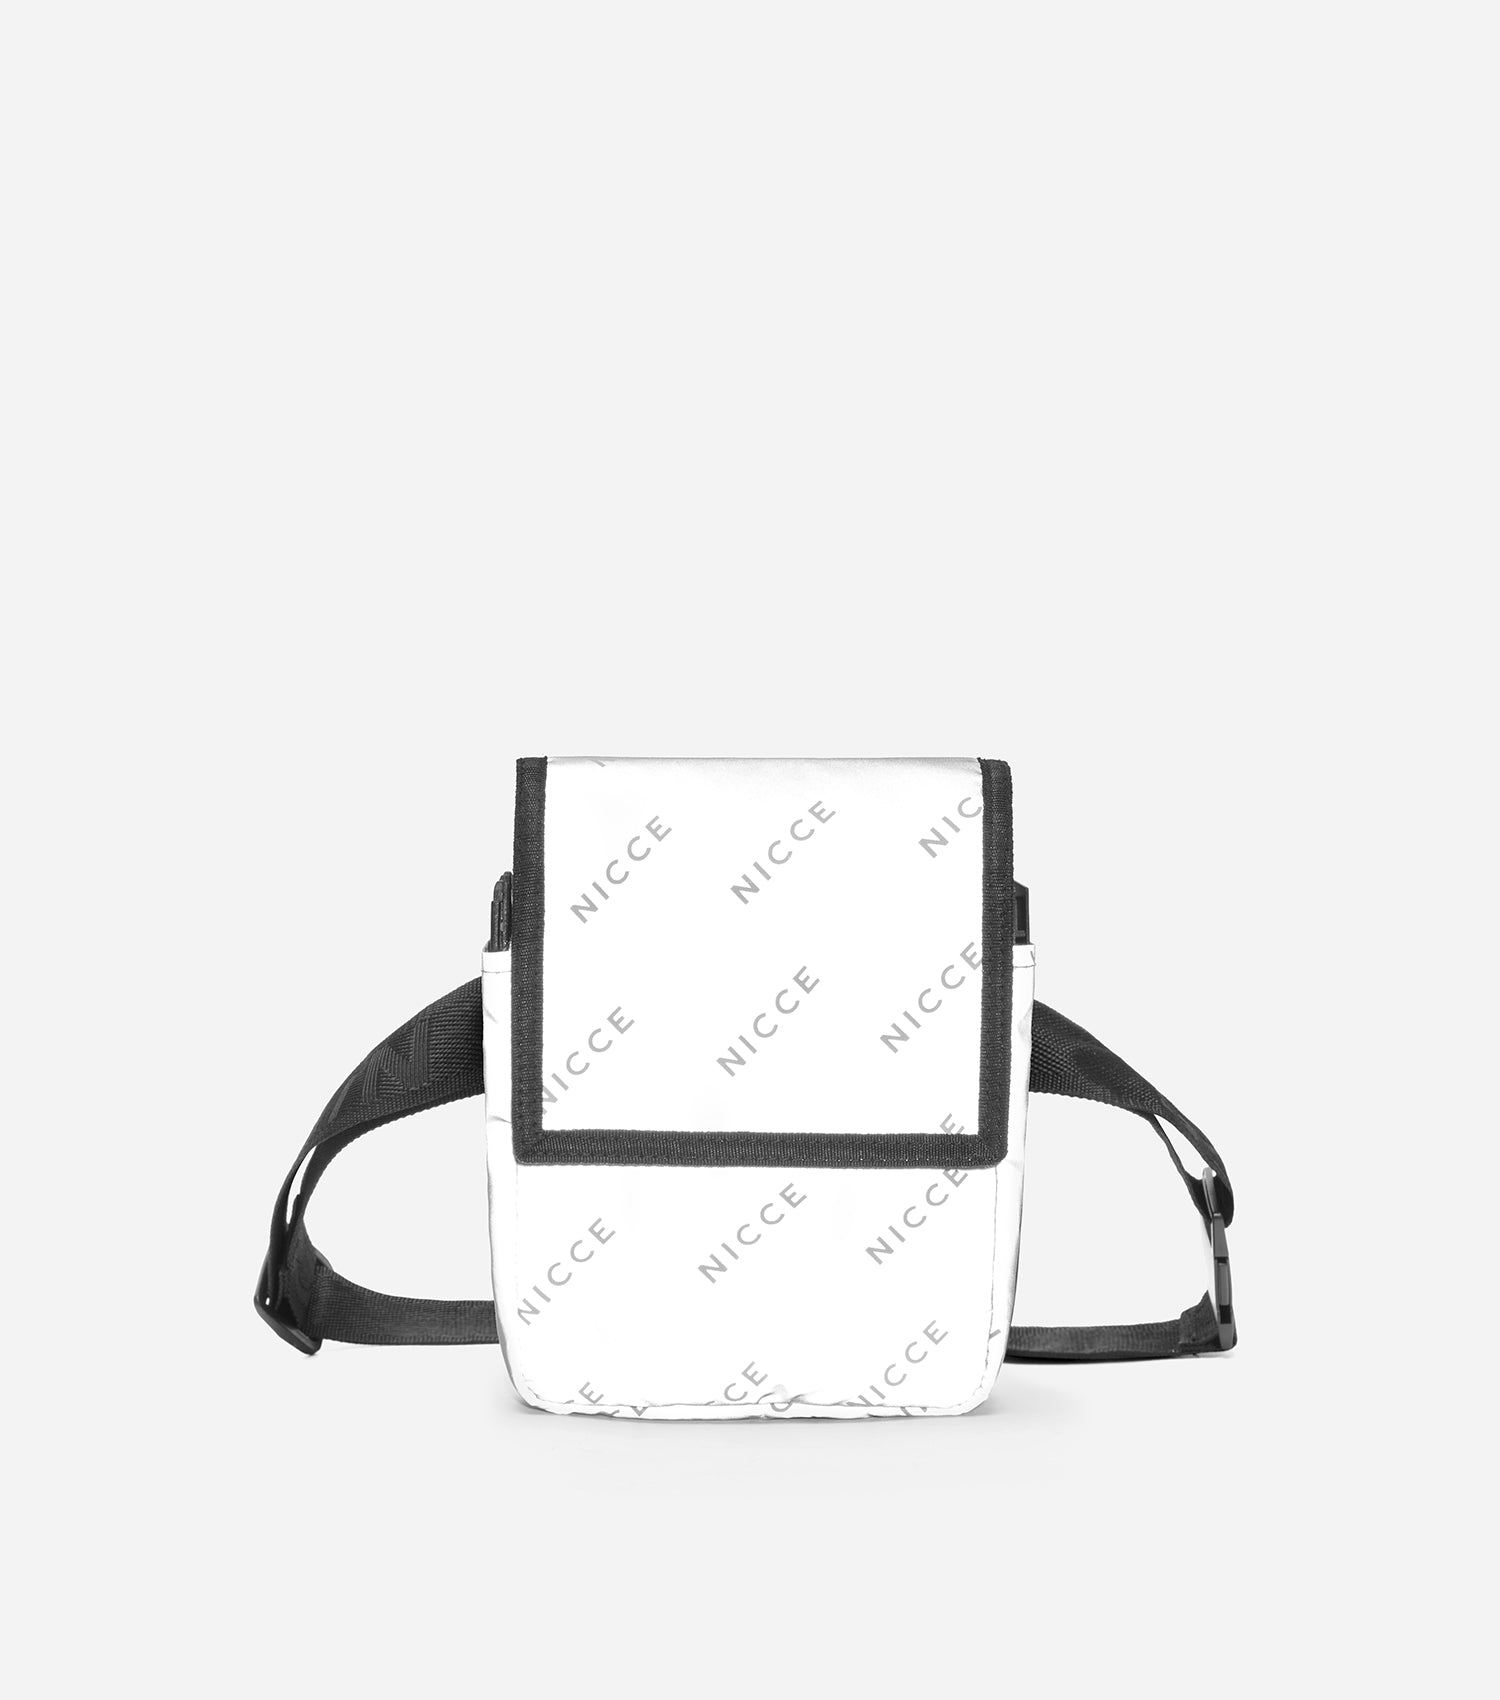 NICCE Kyra Cross Body/Bum Bag | Reflective, Bags